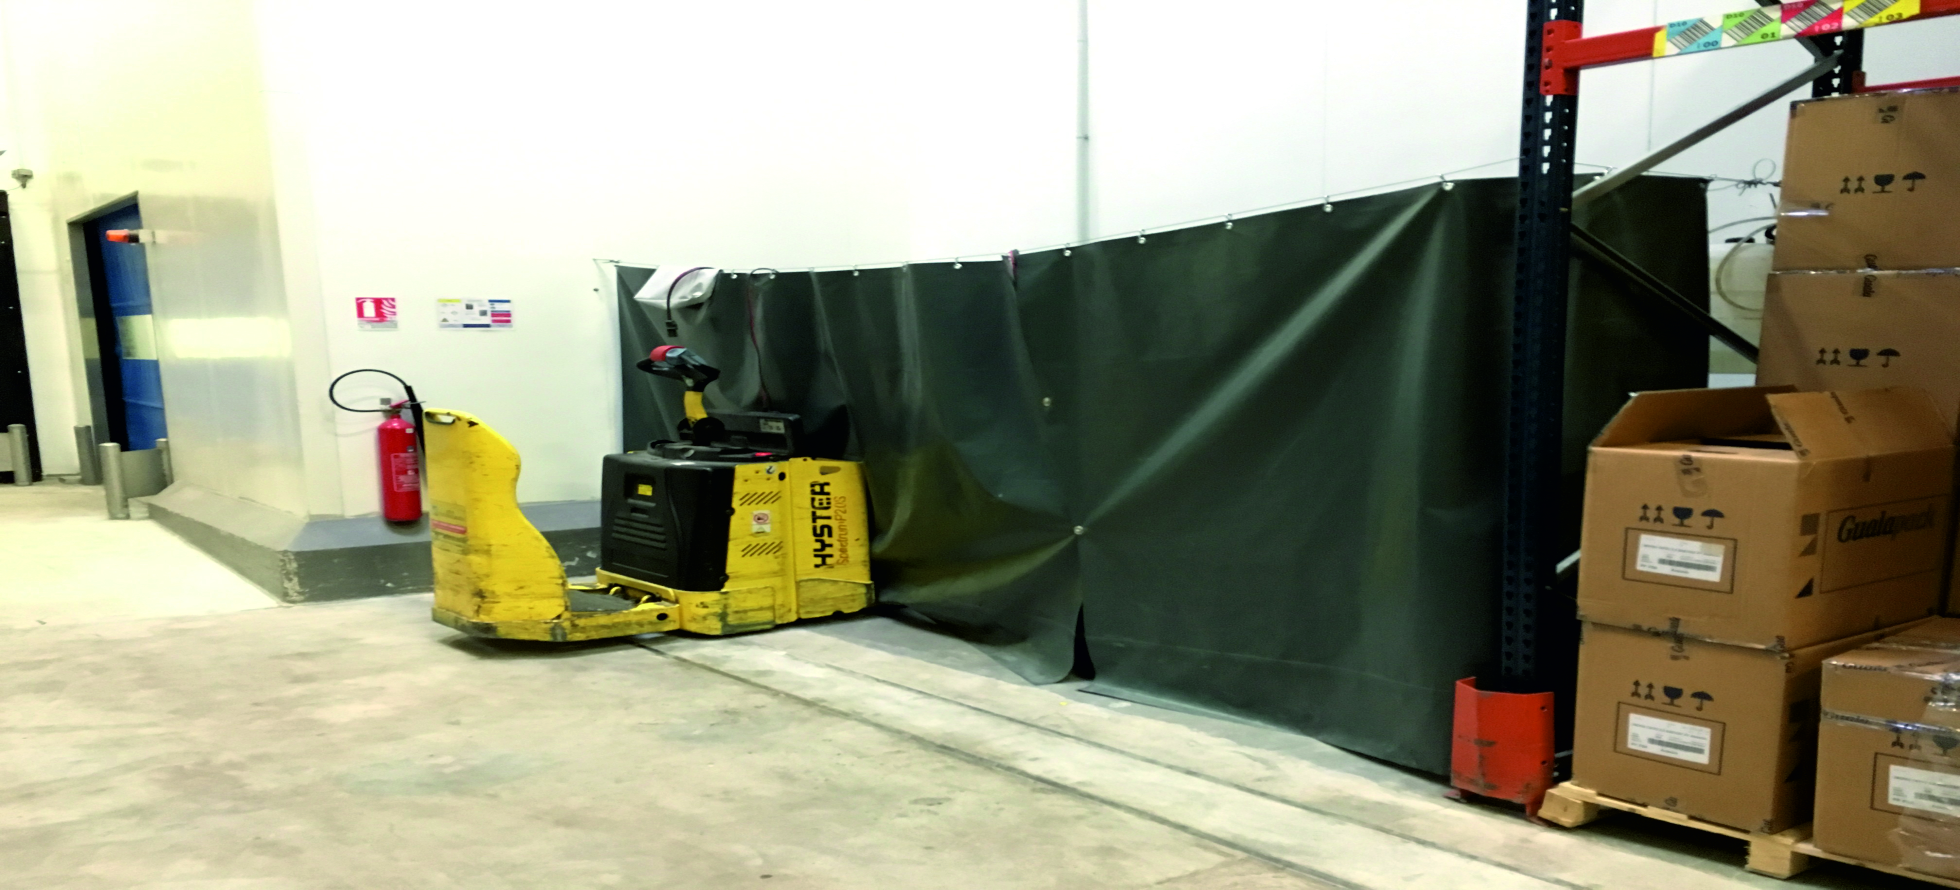 protective curtain for storage area